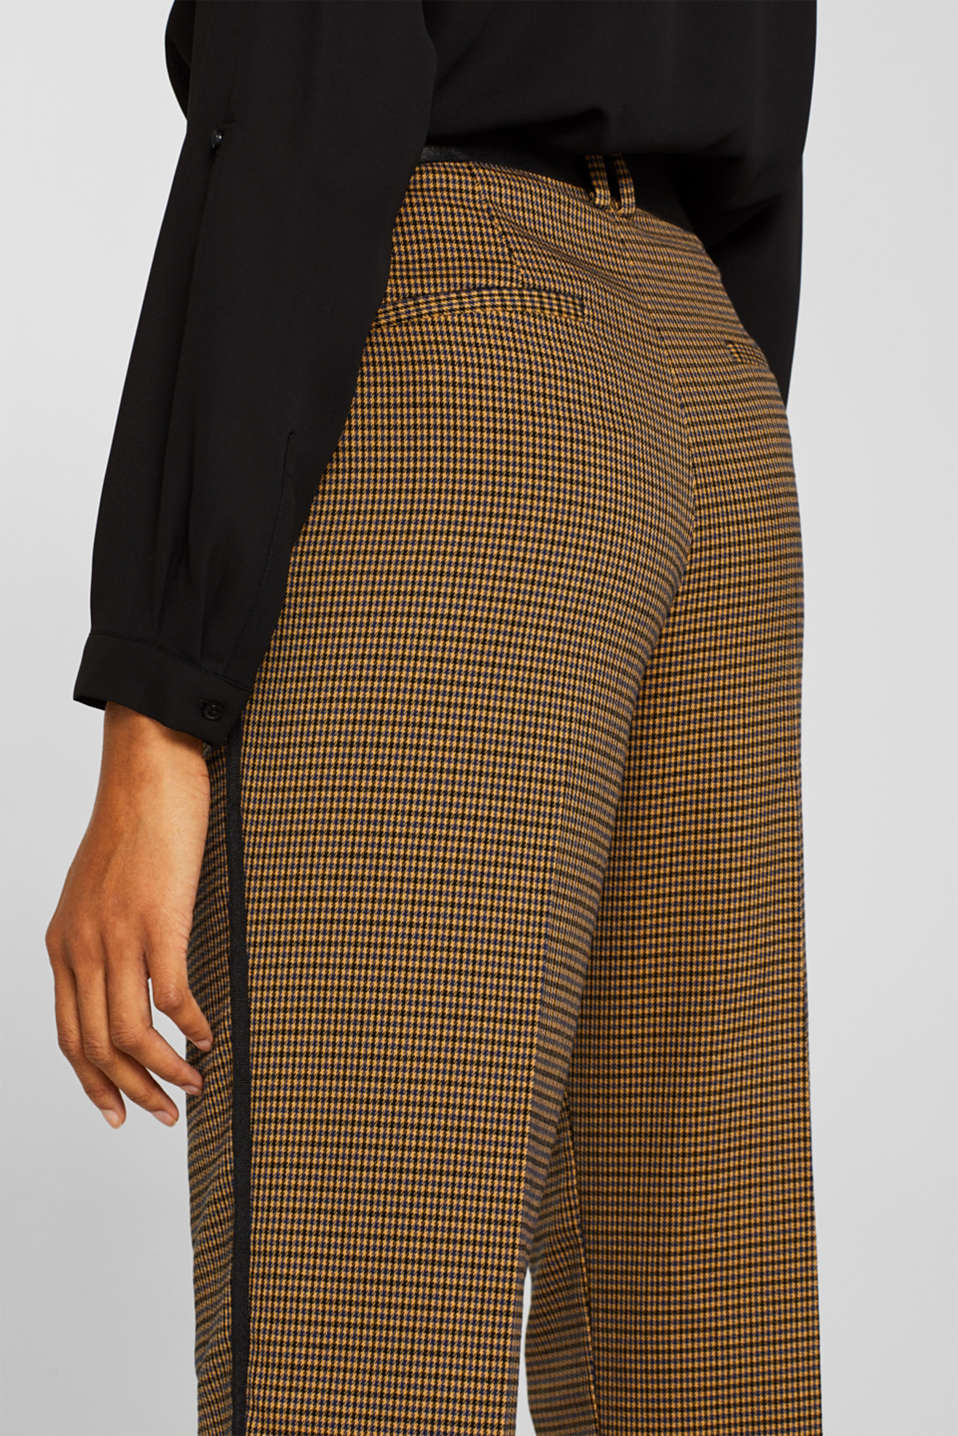 Stretch trousers with a houndstooth pattern and racing stripes, BARK, detail image number 5